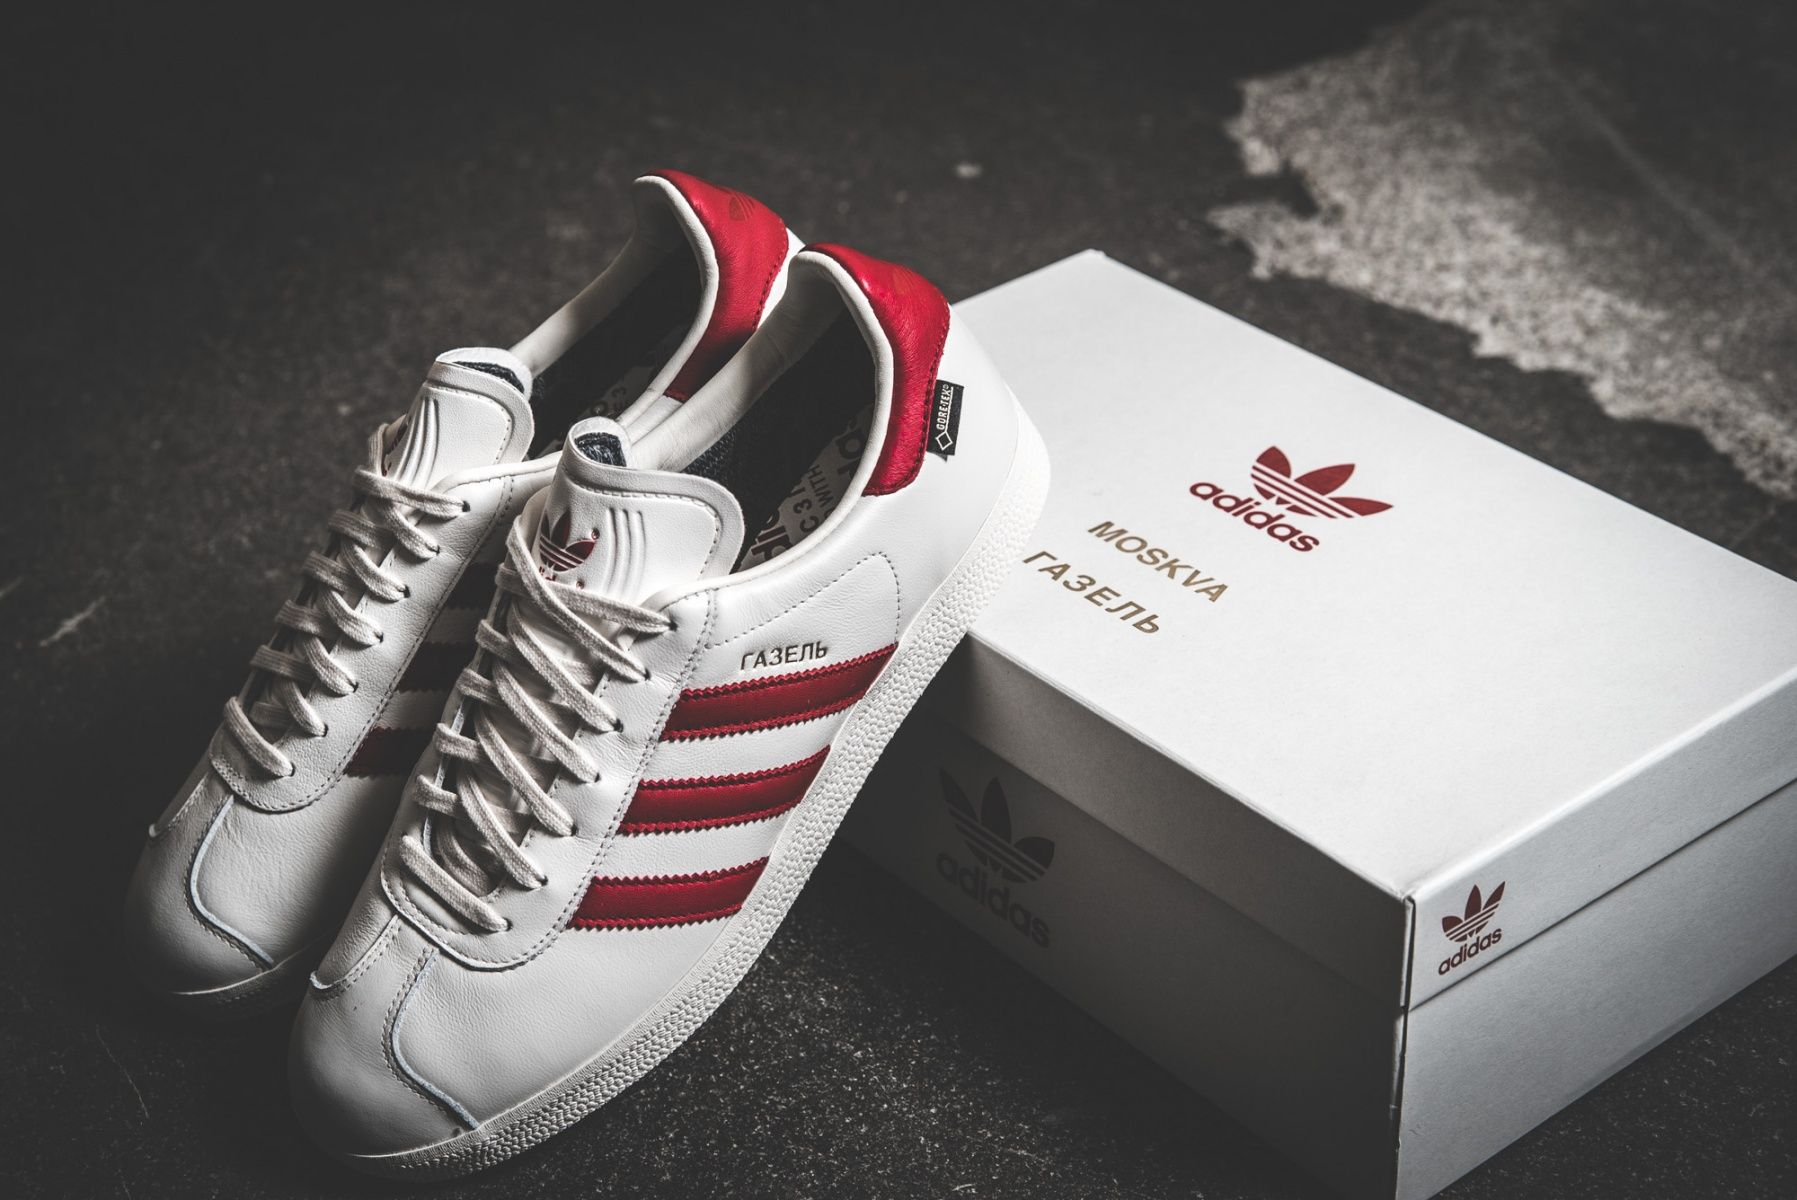 adidas also released the Moskva Gazelle in leather as part of the City  Series release.